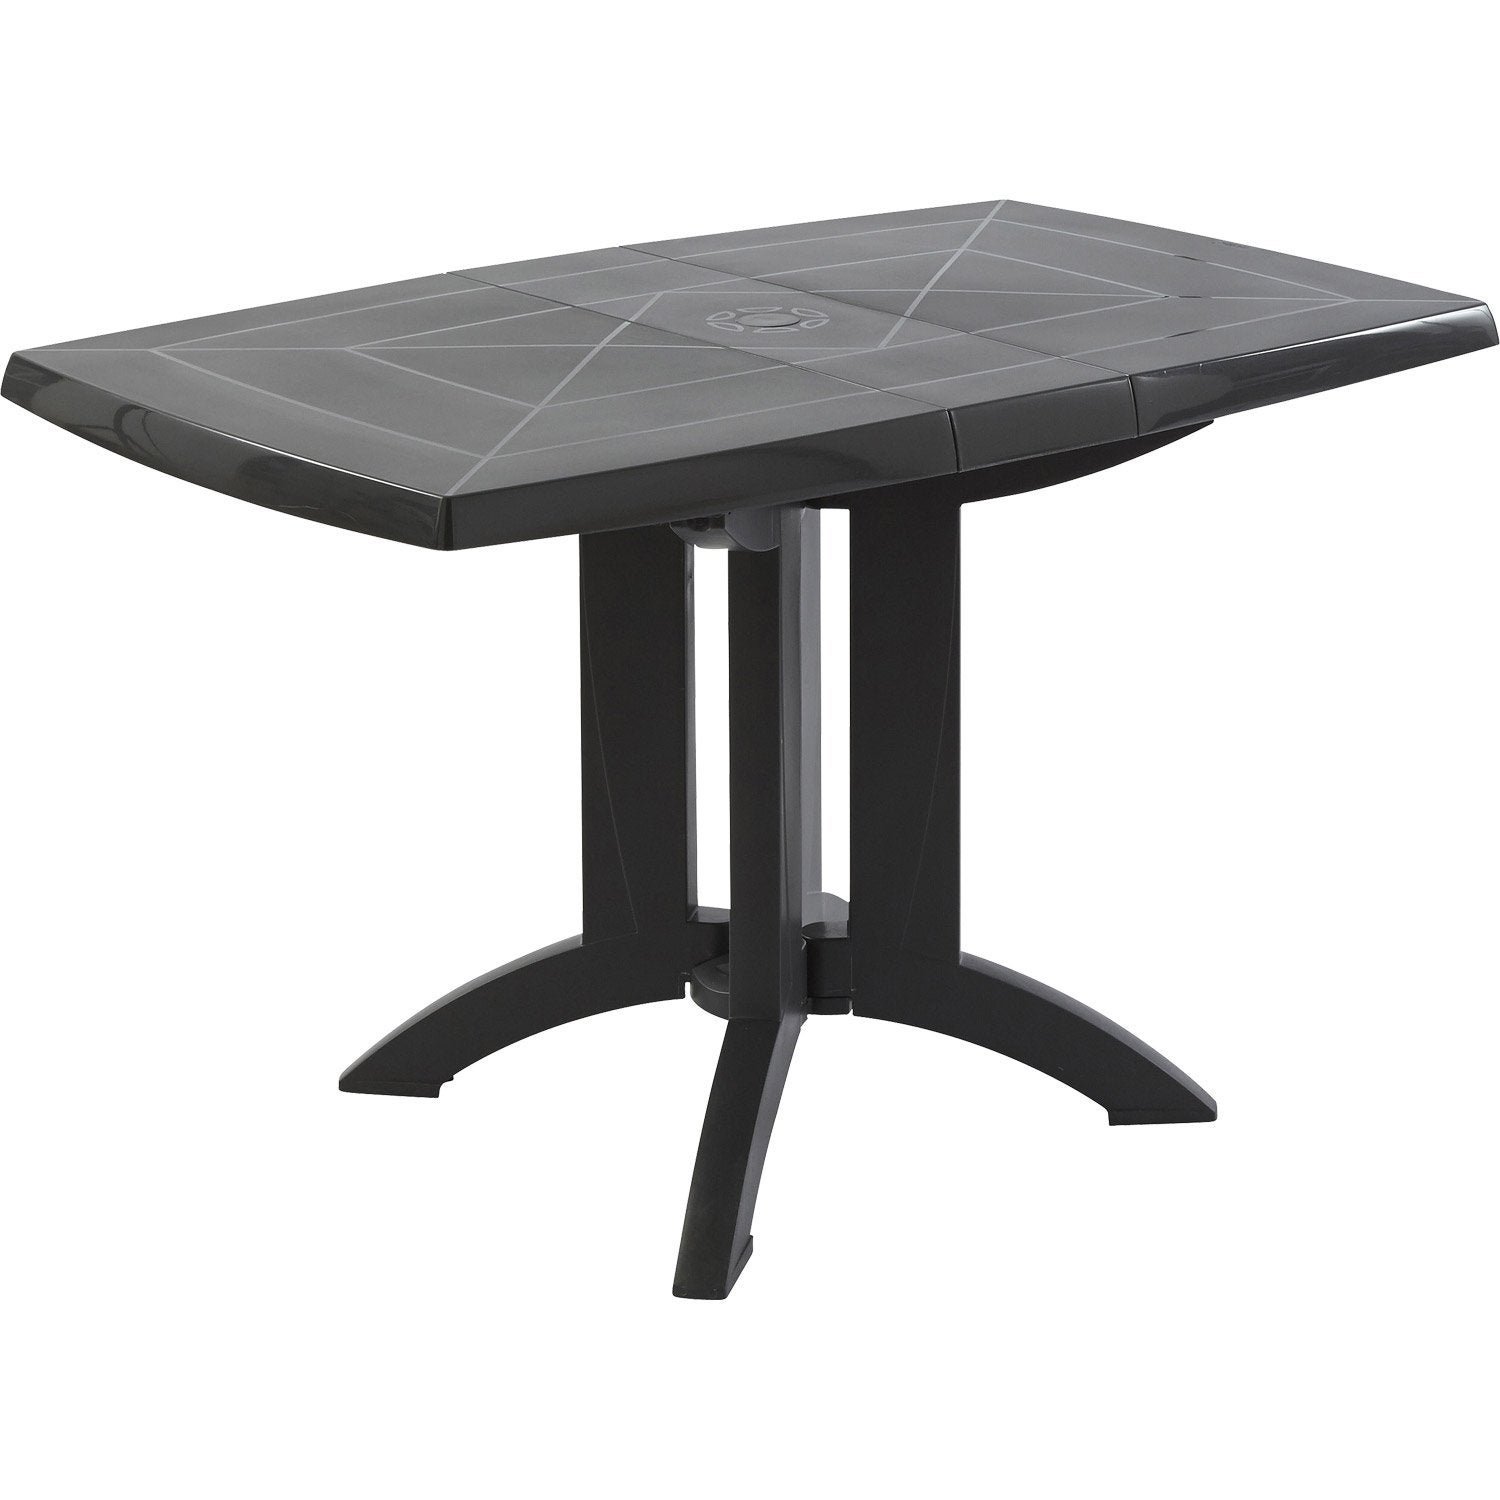 Table de jardin grosfillex v ga rectangulaire anthracite 4 - Table et chaise de jardin grosfillex ...